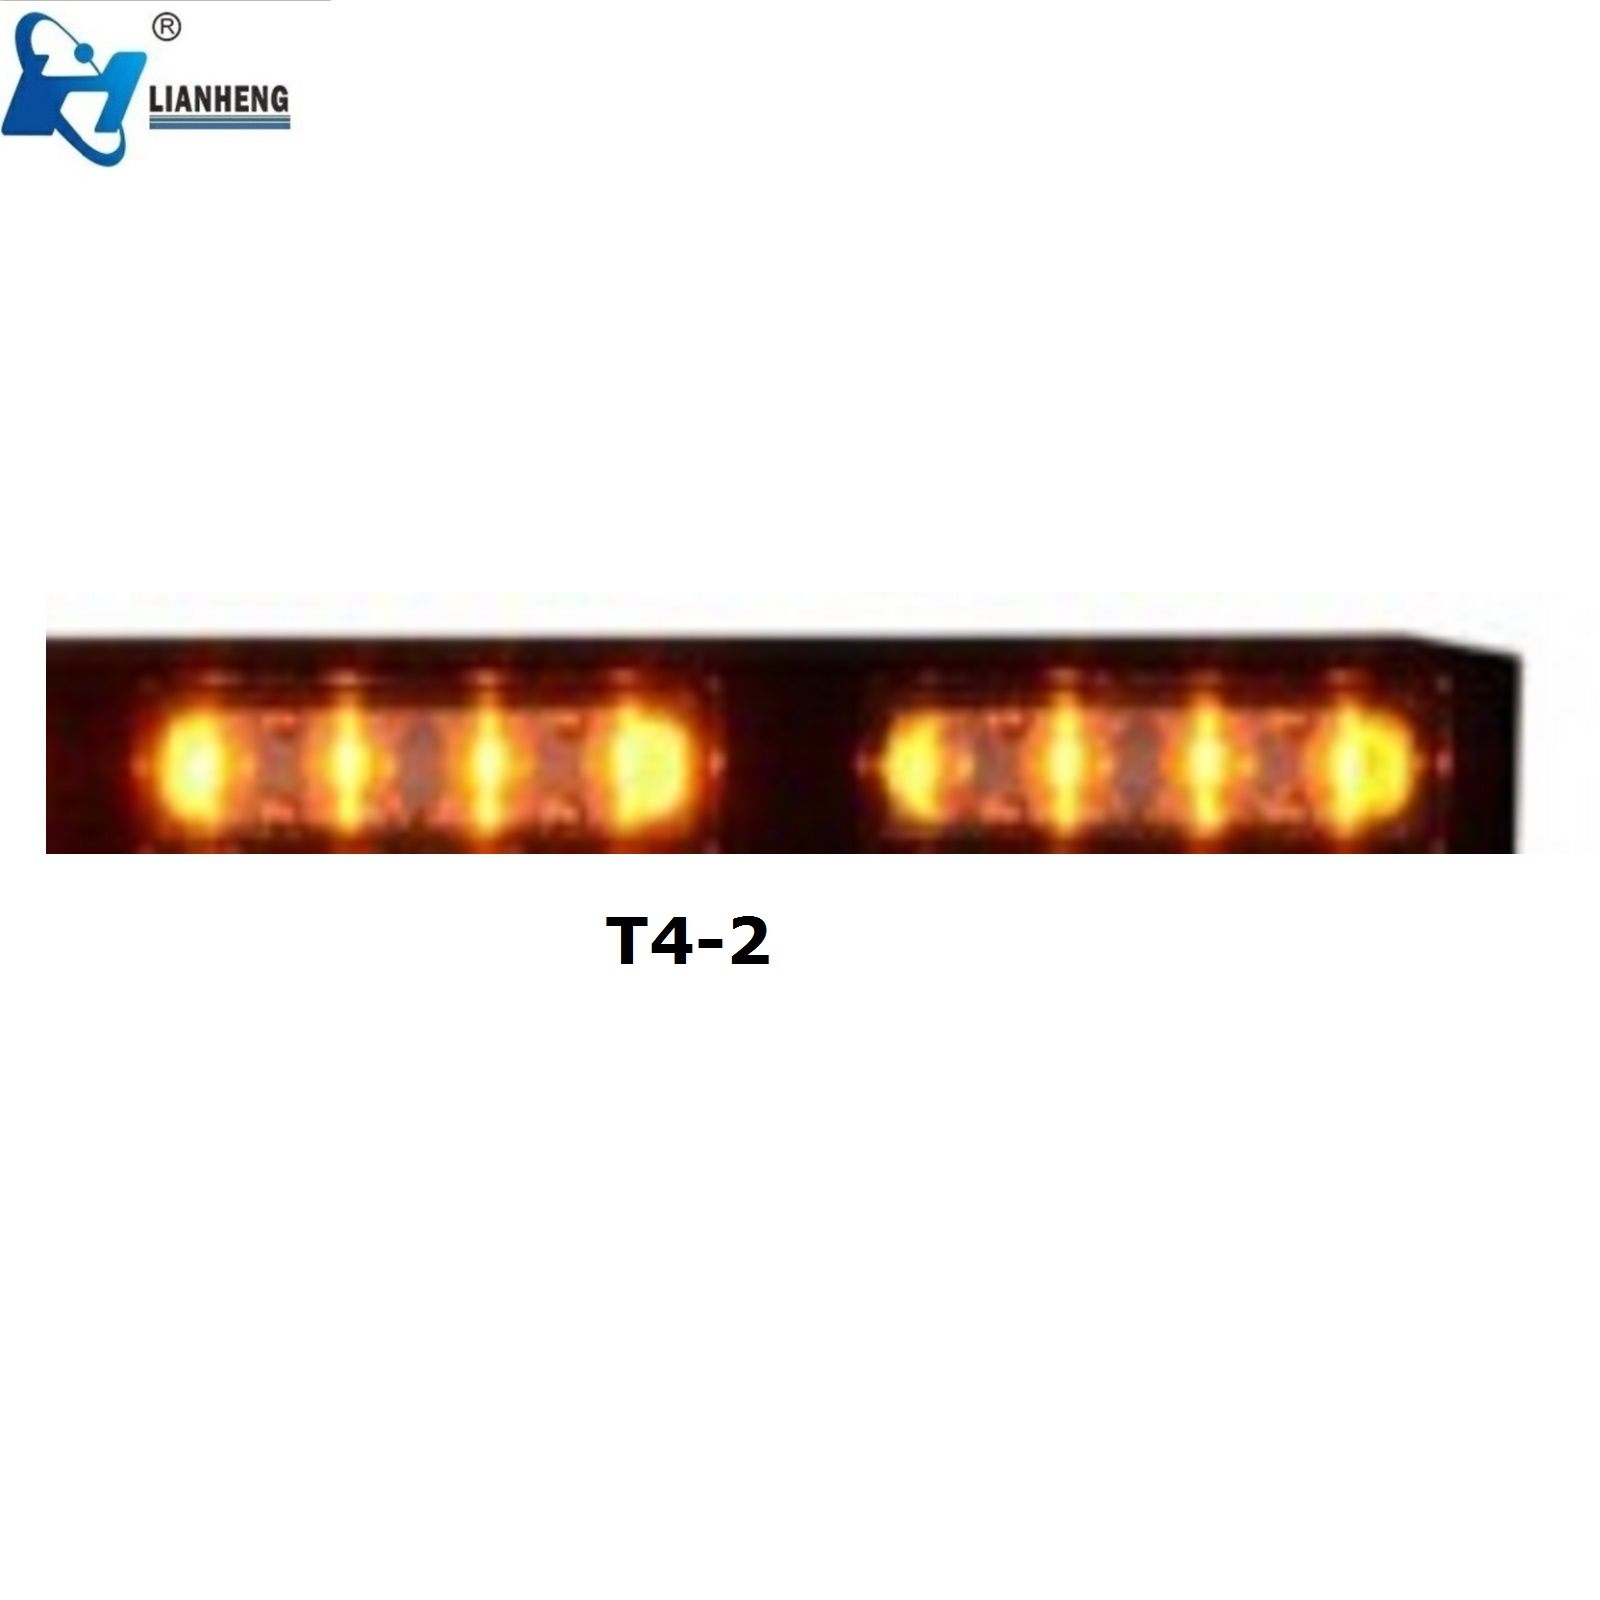 Led light bar traffic advisor